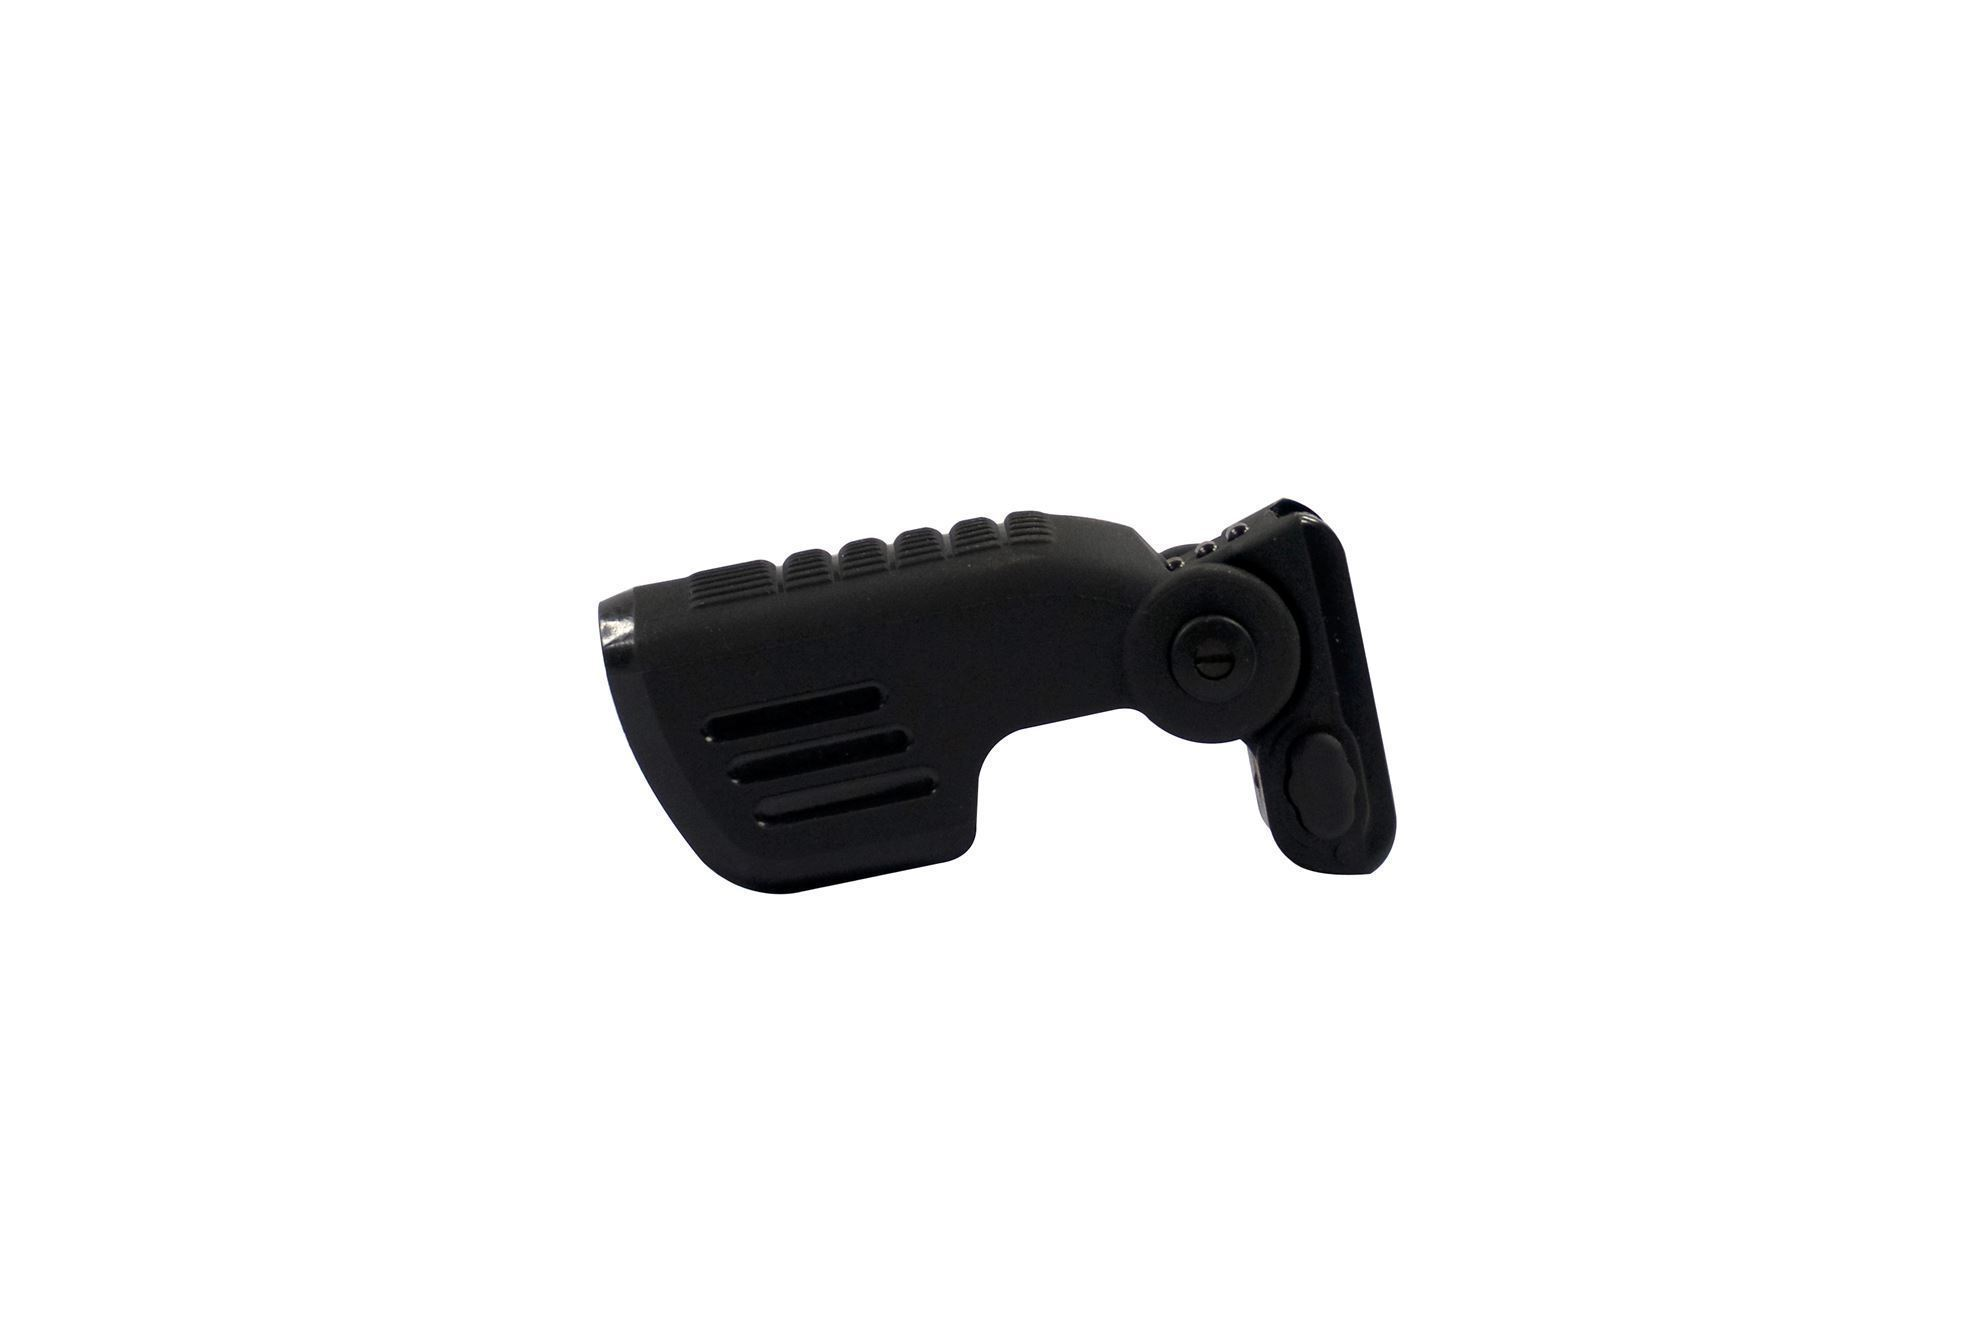 FVG1 - Two Position Folding Forward Grip